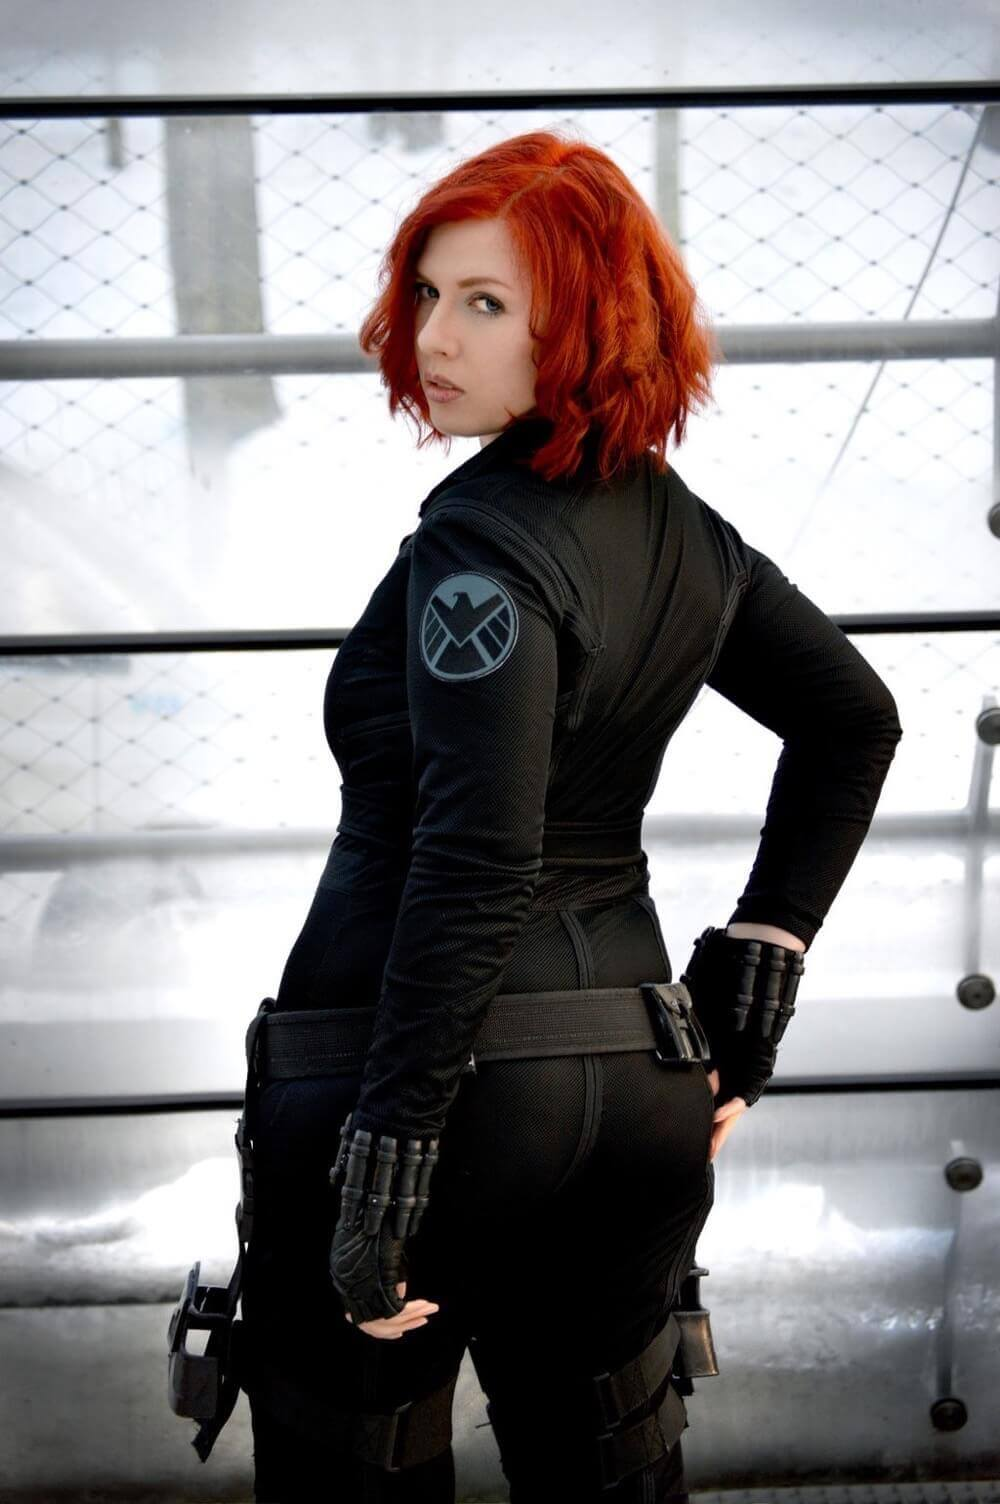 Black Widow hot butt